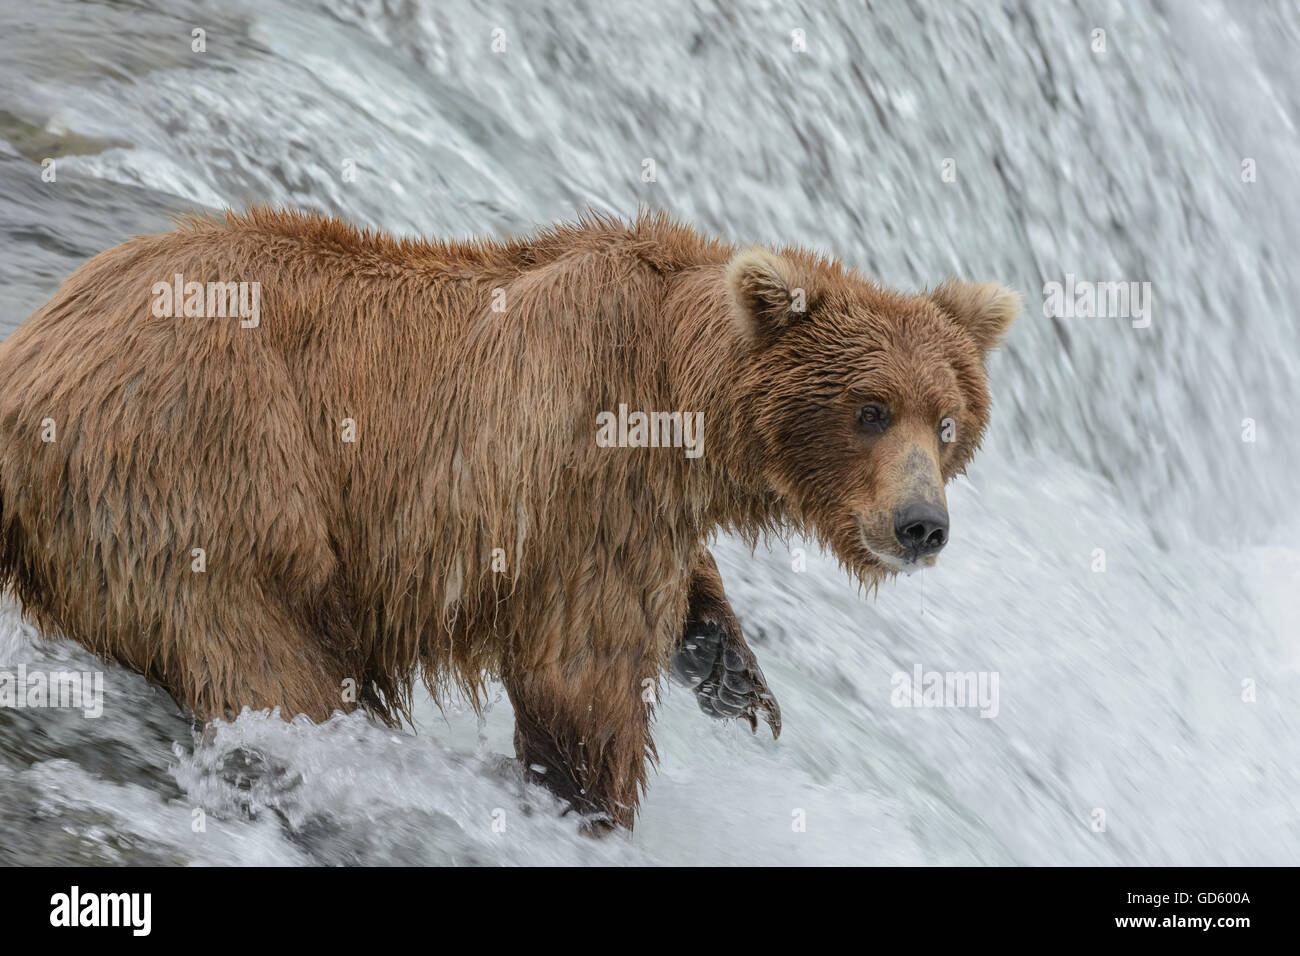 Grizzly bear catching salmon at the top of a waterfall, Brook Falls, Alaska - Stock Image